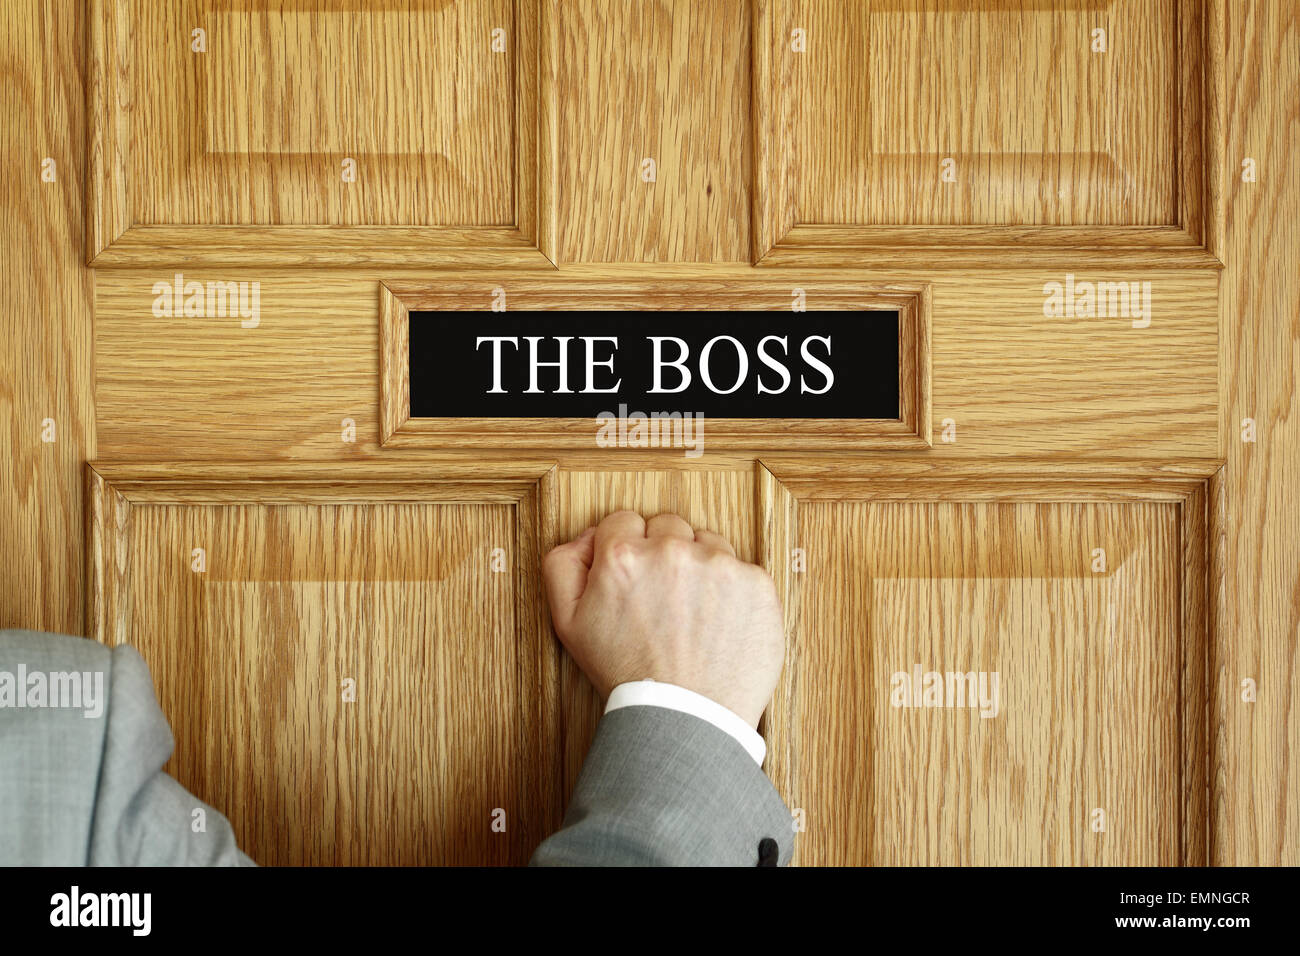 Businessman knocking on a door to 'The Boss' office concept for meeting, trouble, problems, promotion or - Stock Image